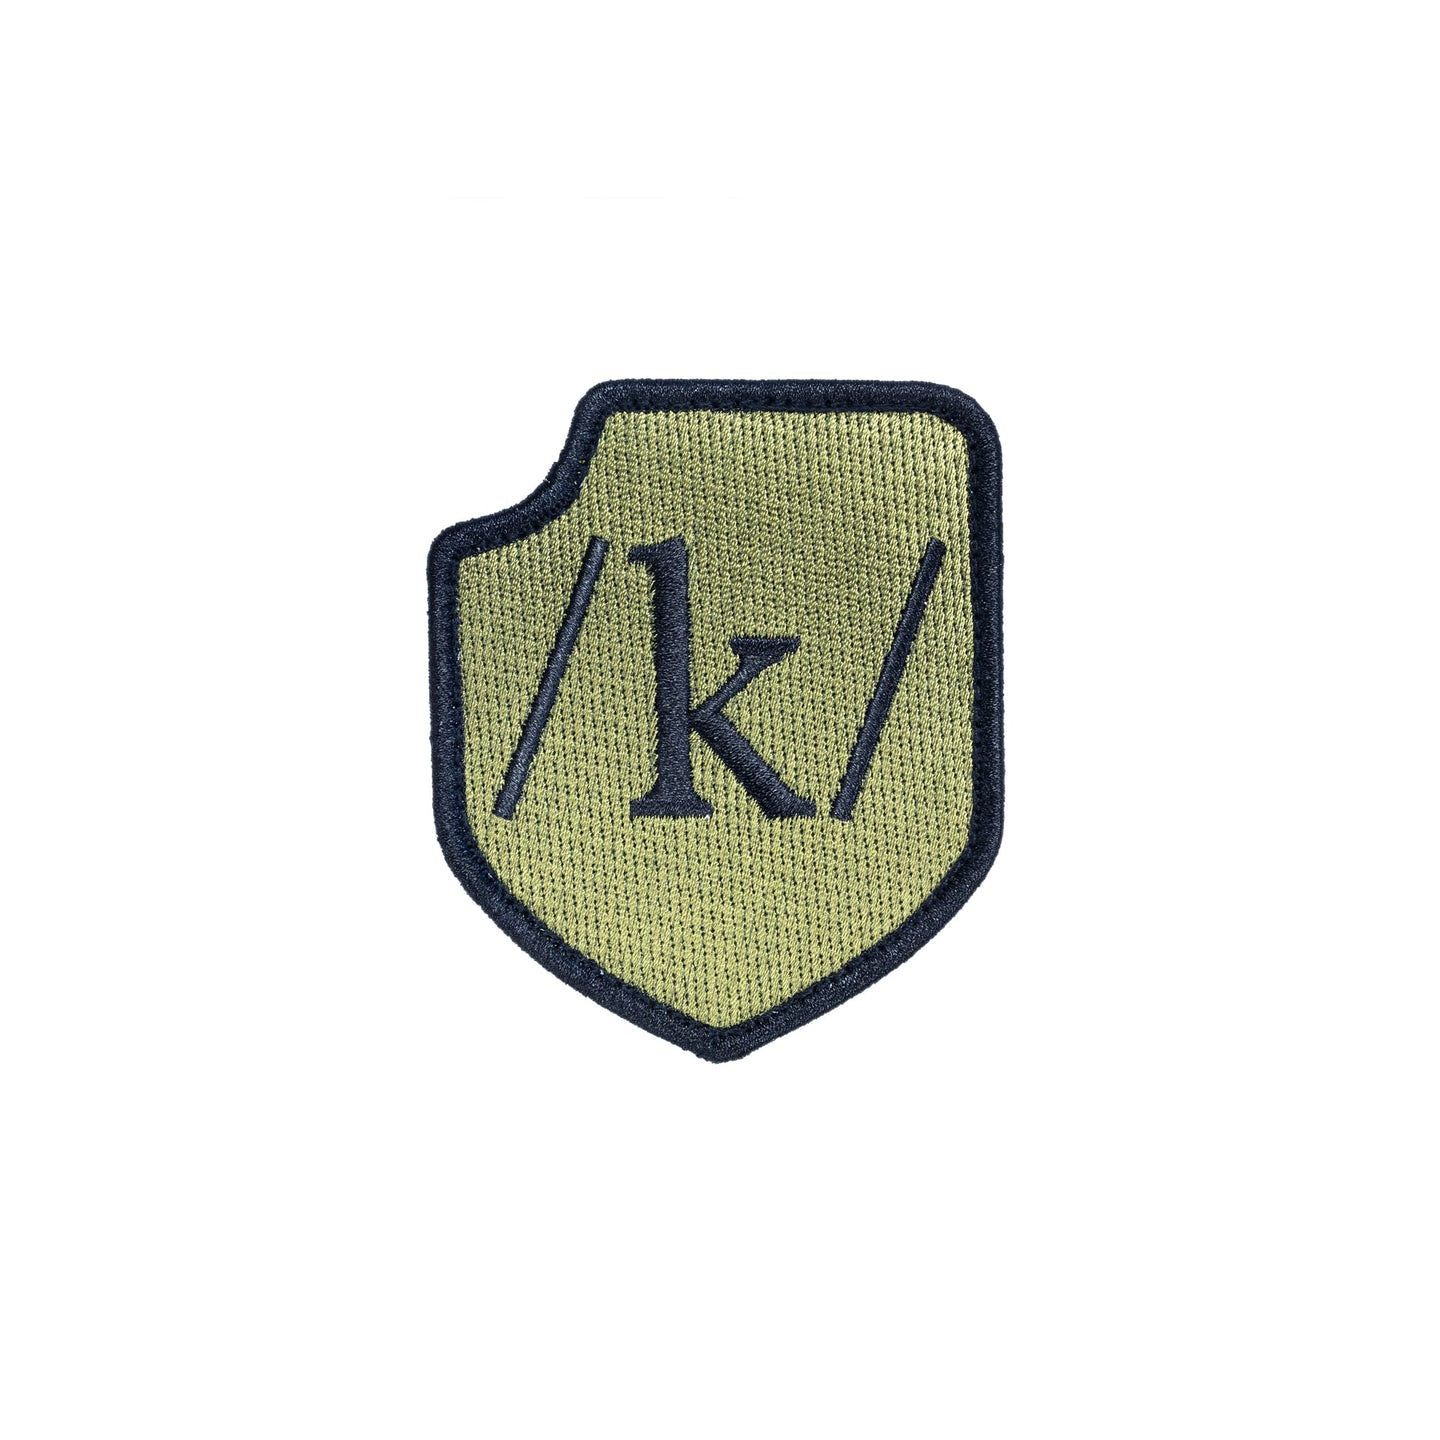 /k/ SHIELD PATCH MK2